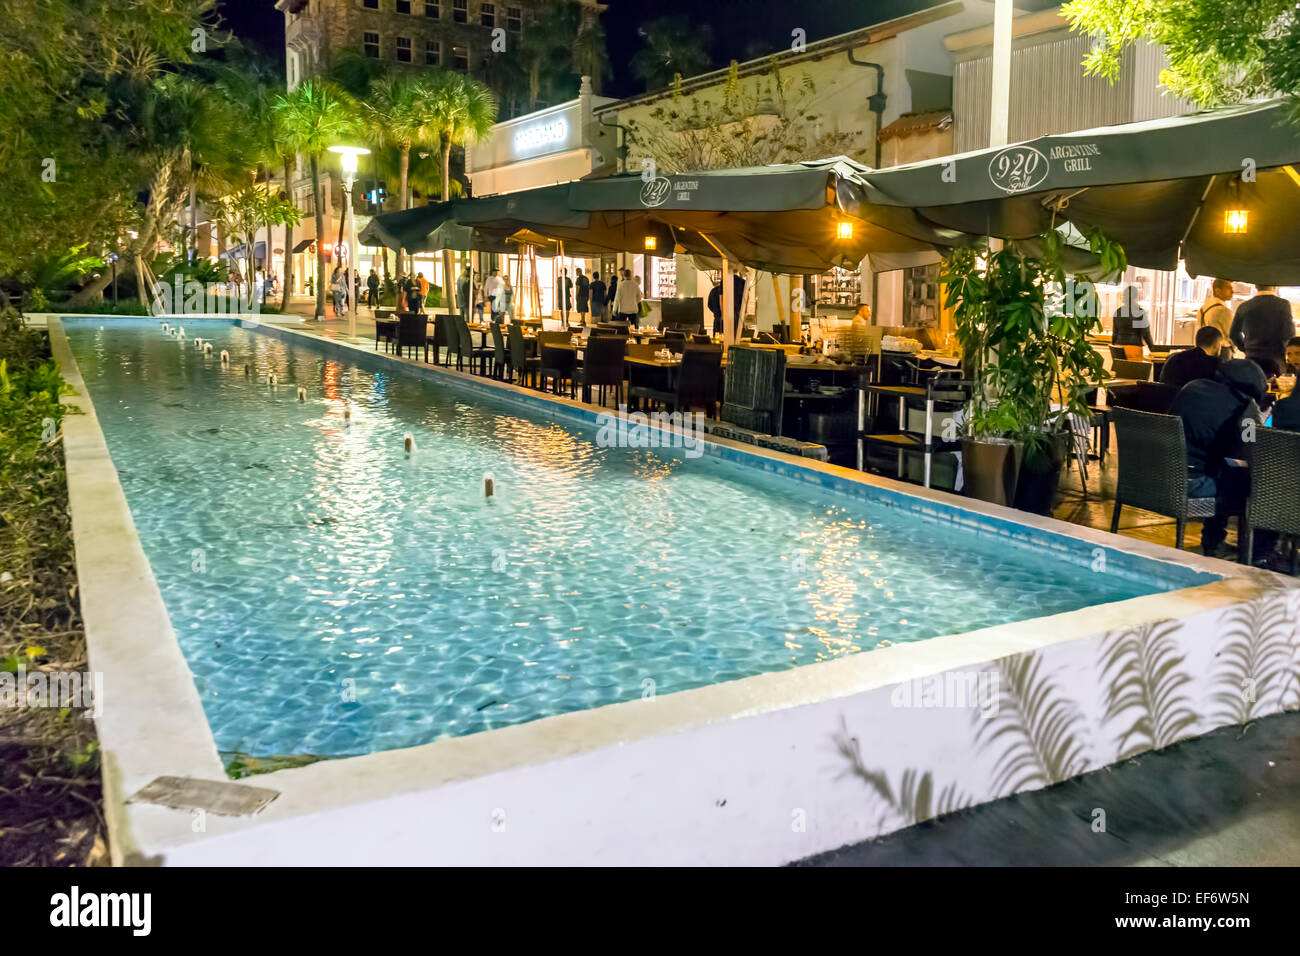 People dining next to public fountain and pool at 920 Argentine grill along the Lincoln Road Mall on Miami Beach, Stock Photo